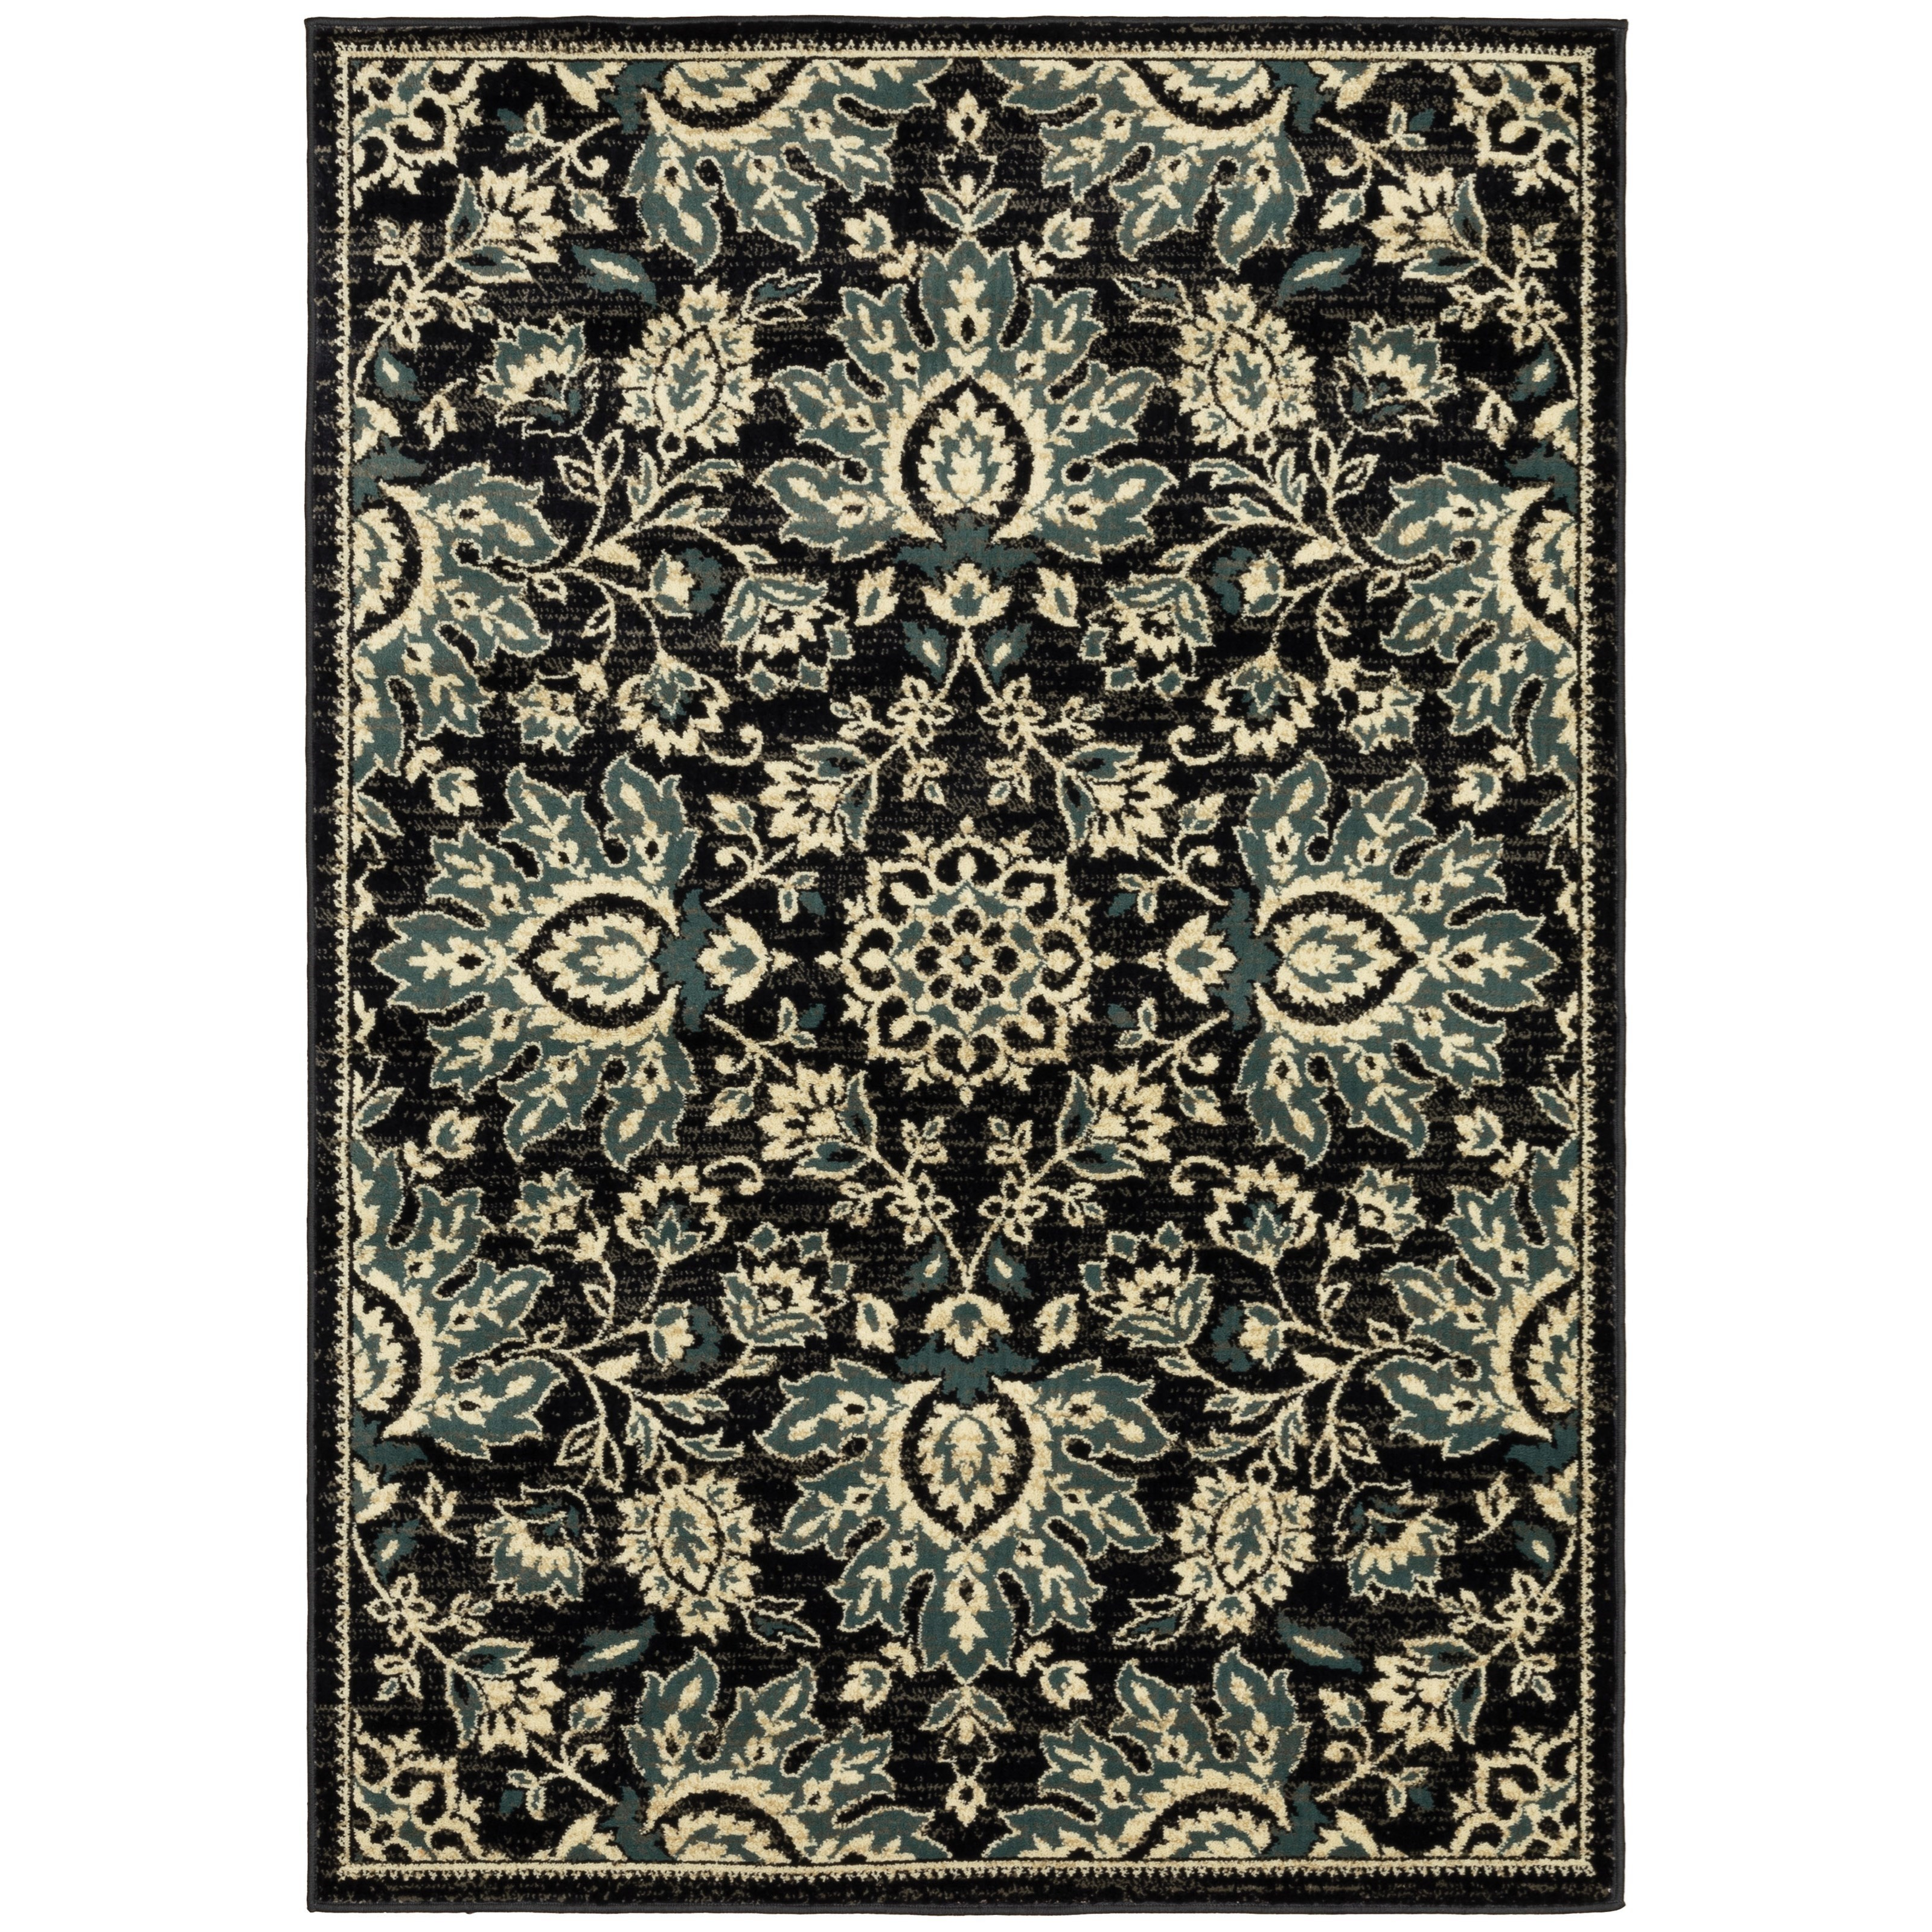 "Evandale 9'10"" X 12'10"" Rectangle Rug by Oriental Weavers at Darvin Furniture"